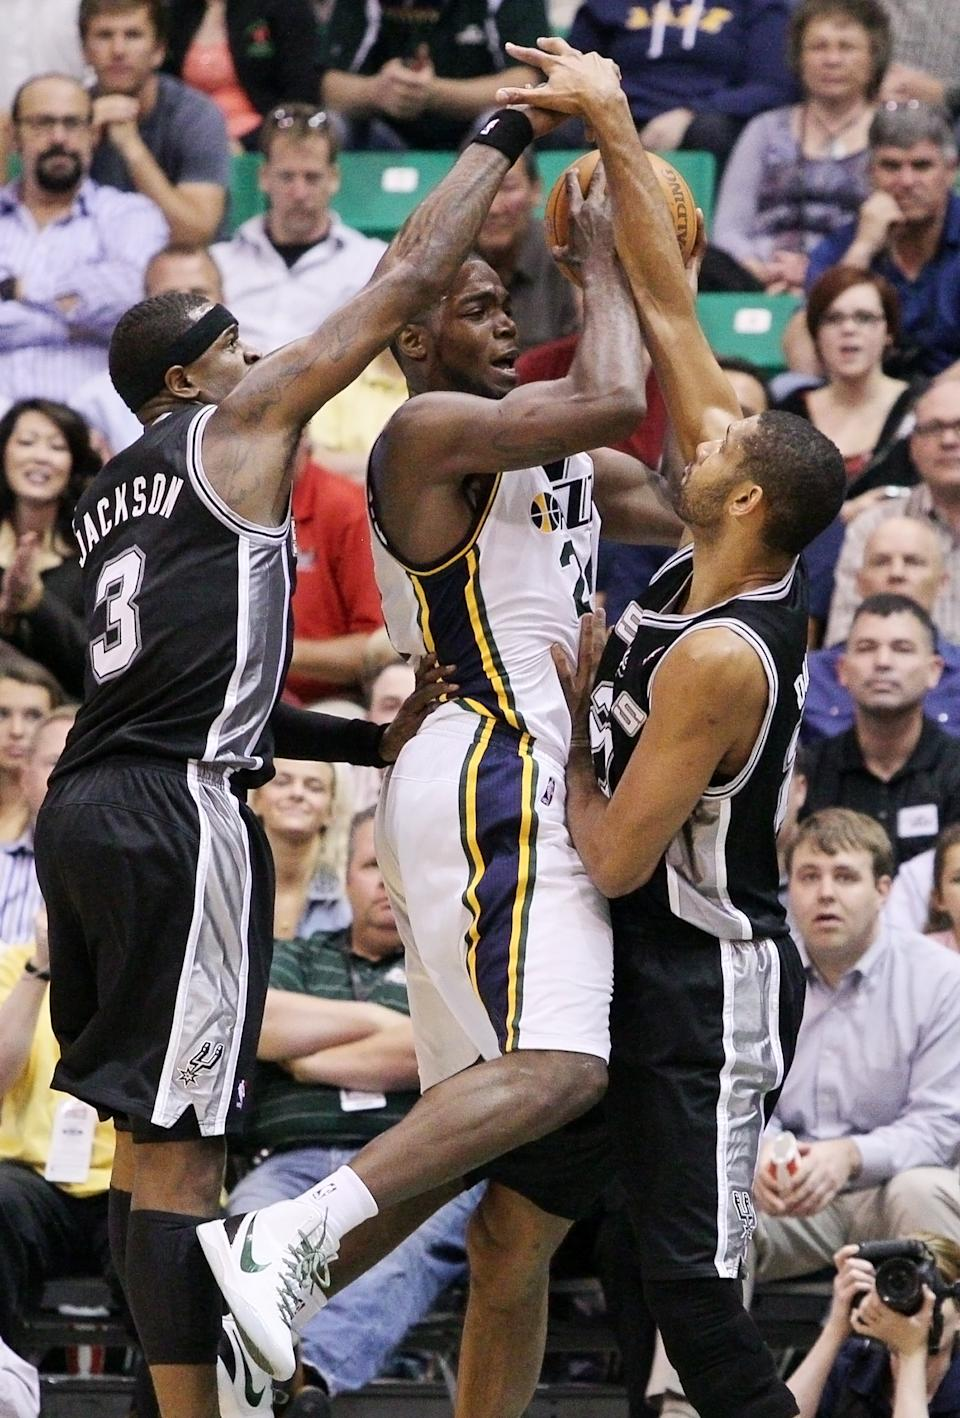 San Antonio Spurs guard Stephen Jackson (3) and center Tim Duncan (21) double team Utah Jazz  forward Paul Millsap (24) during the first half of Game 4 in the first-round NBA basketball playoff series, Monday, May 7, 2012, in Salt Lake City. (AP Photo/Colin E Braley)